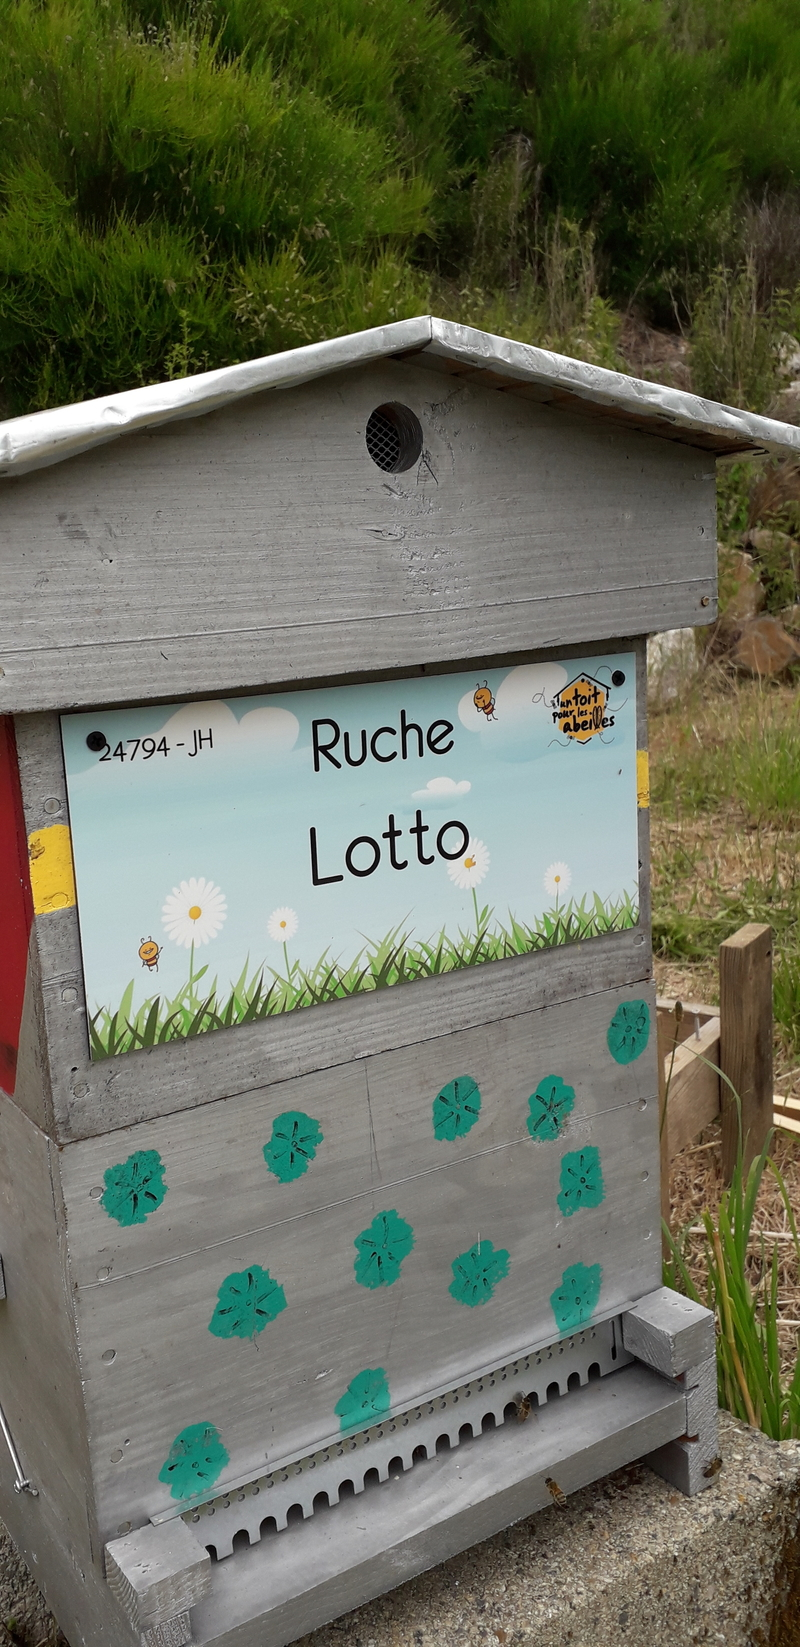 La ruche Lotto